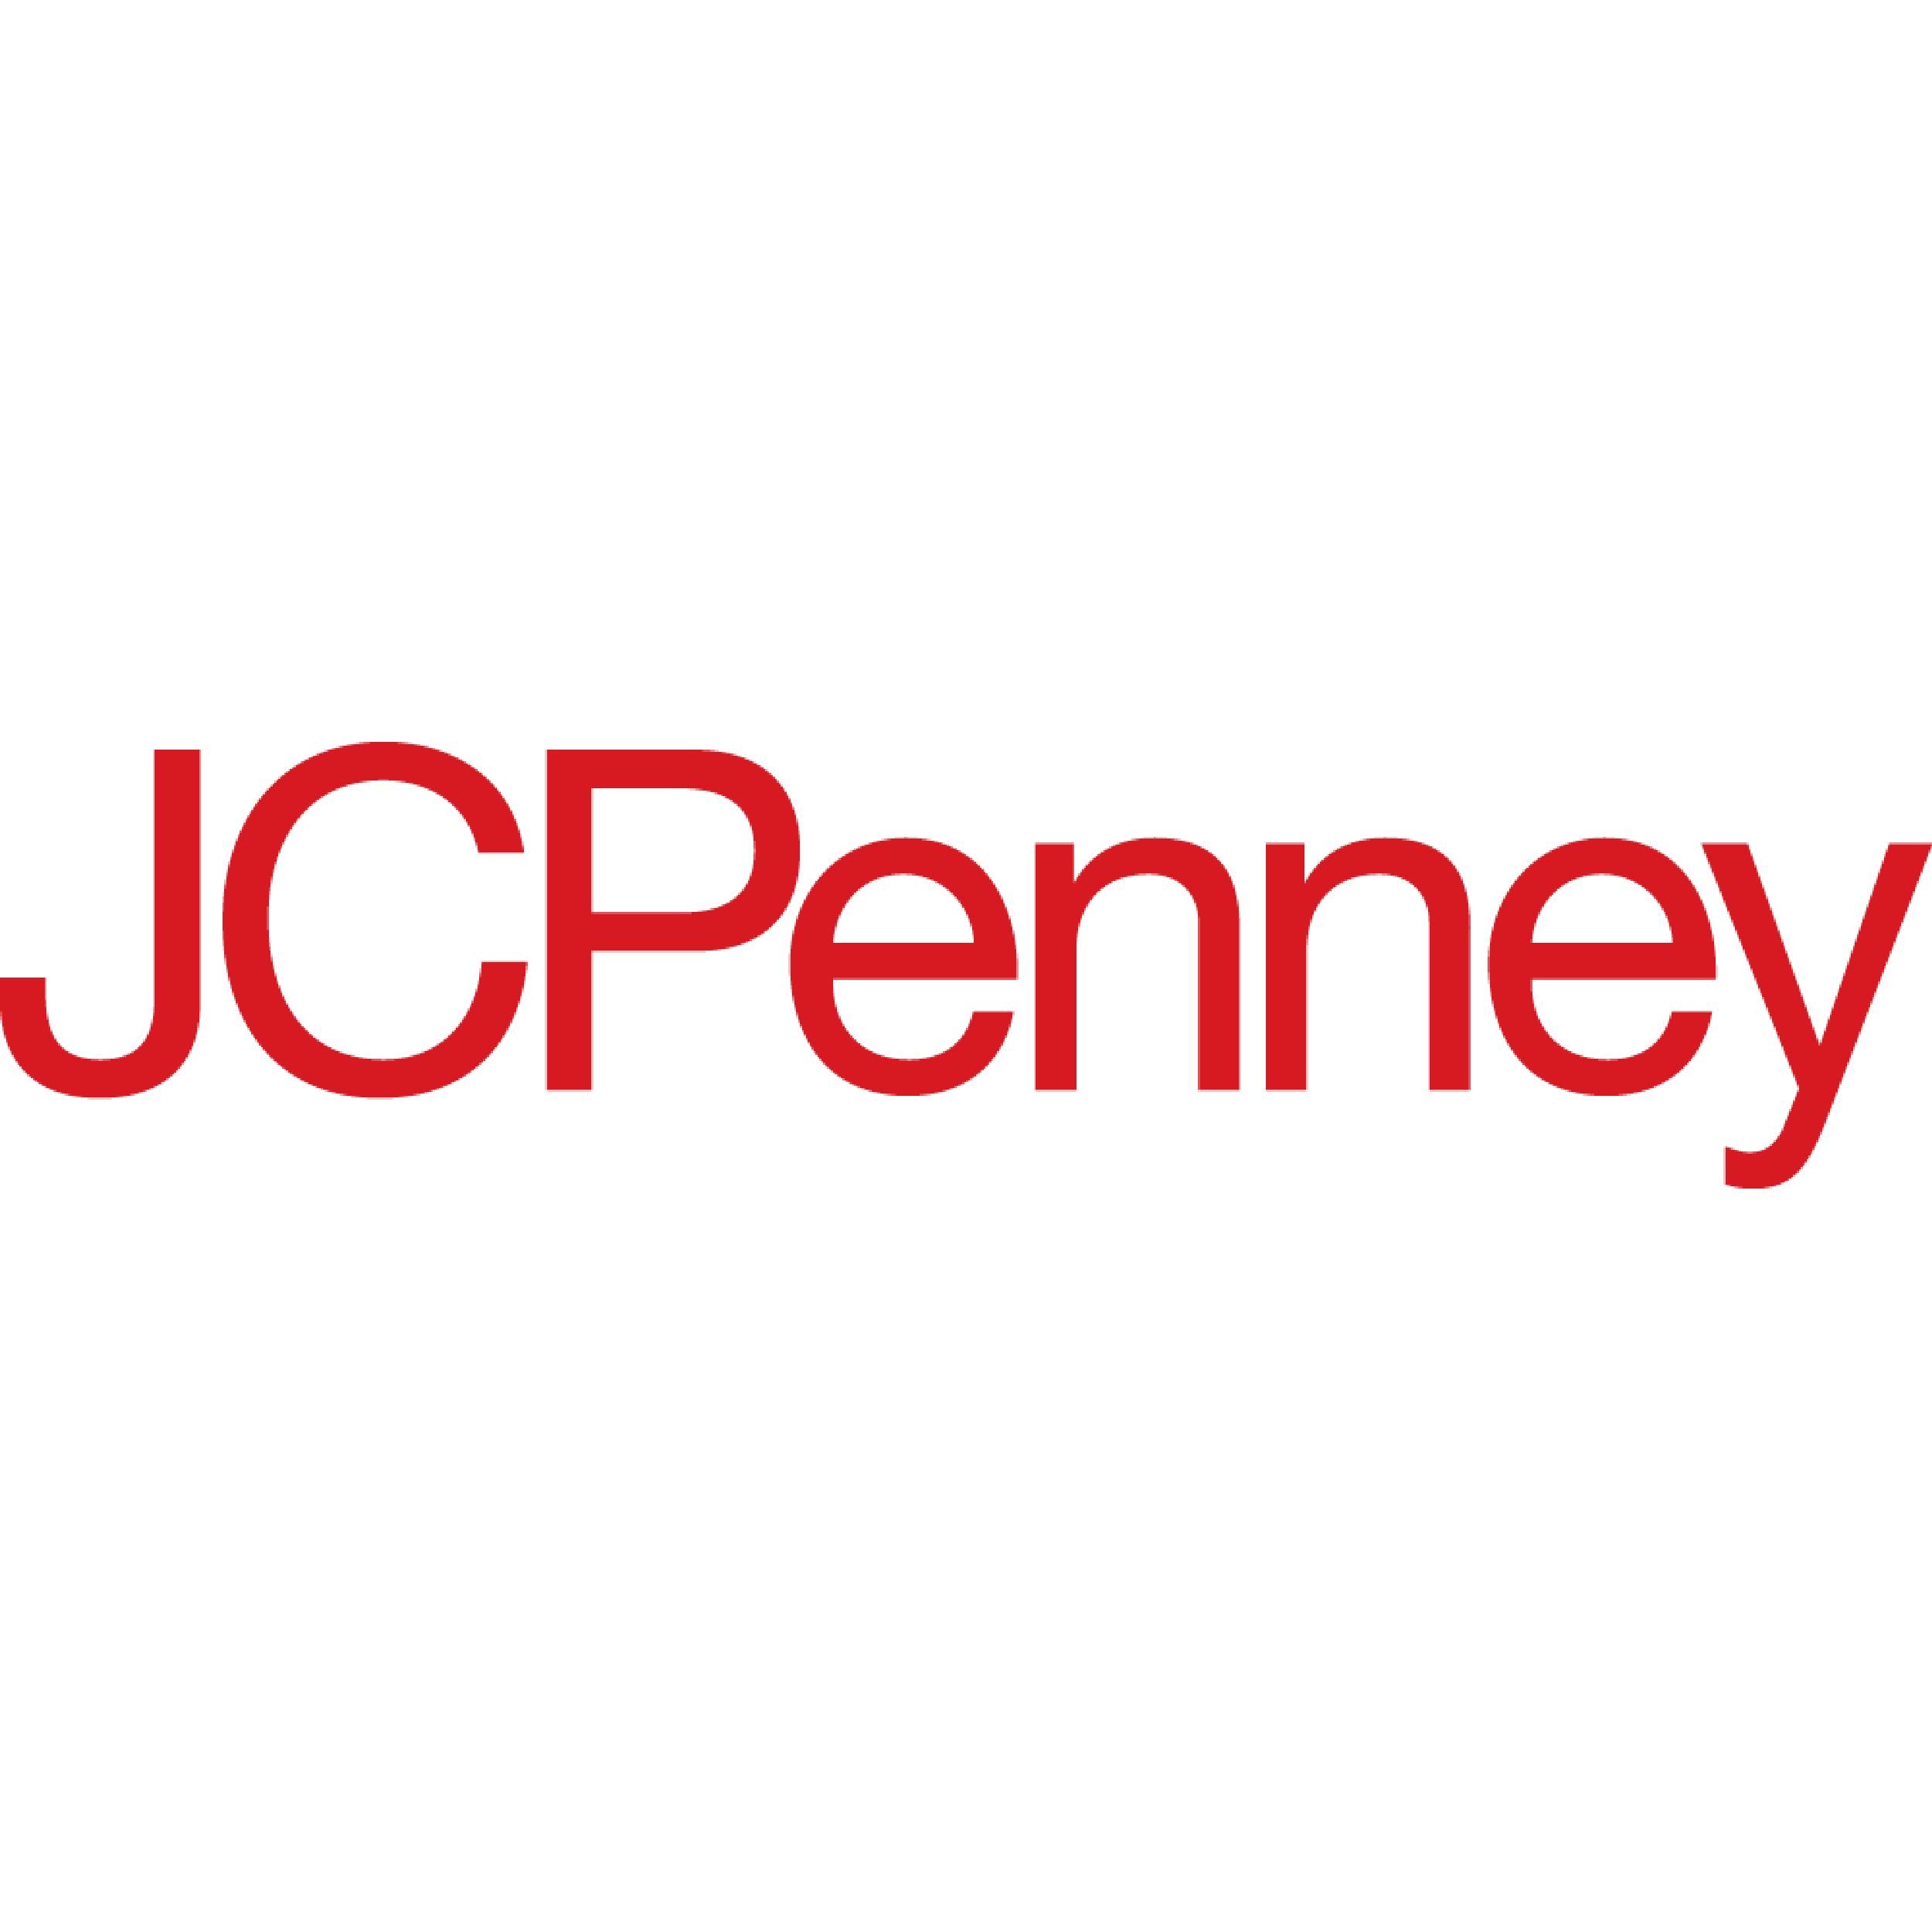 JCPenney - CLOSED image 18